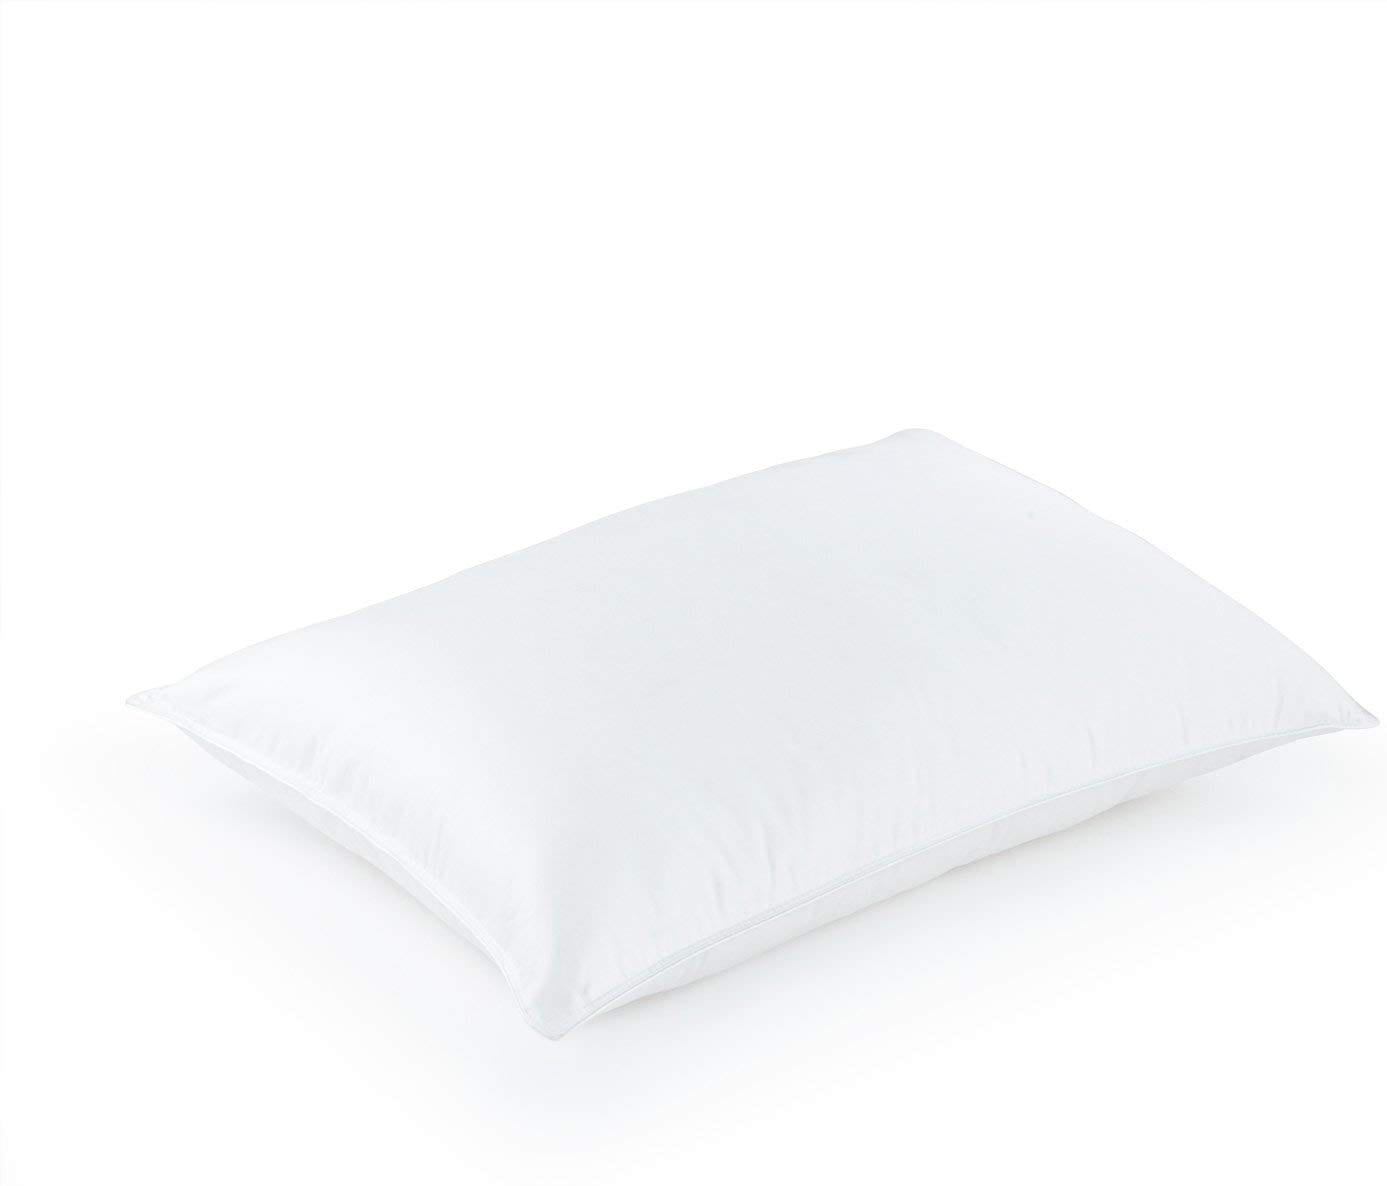 the best down pillows of 2021